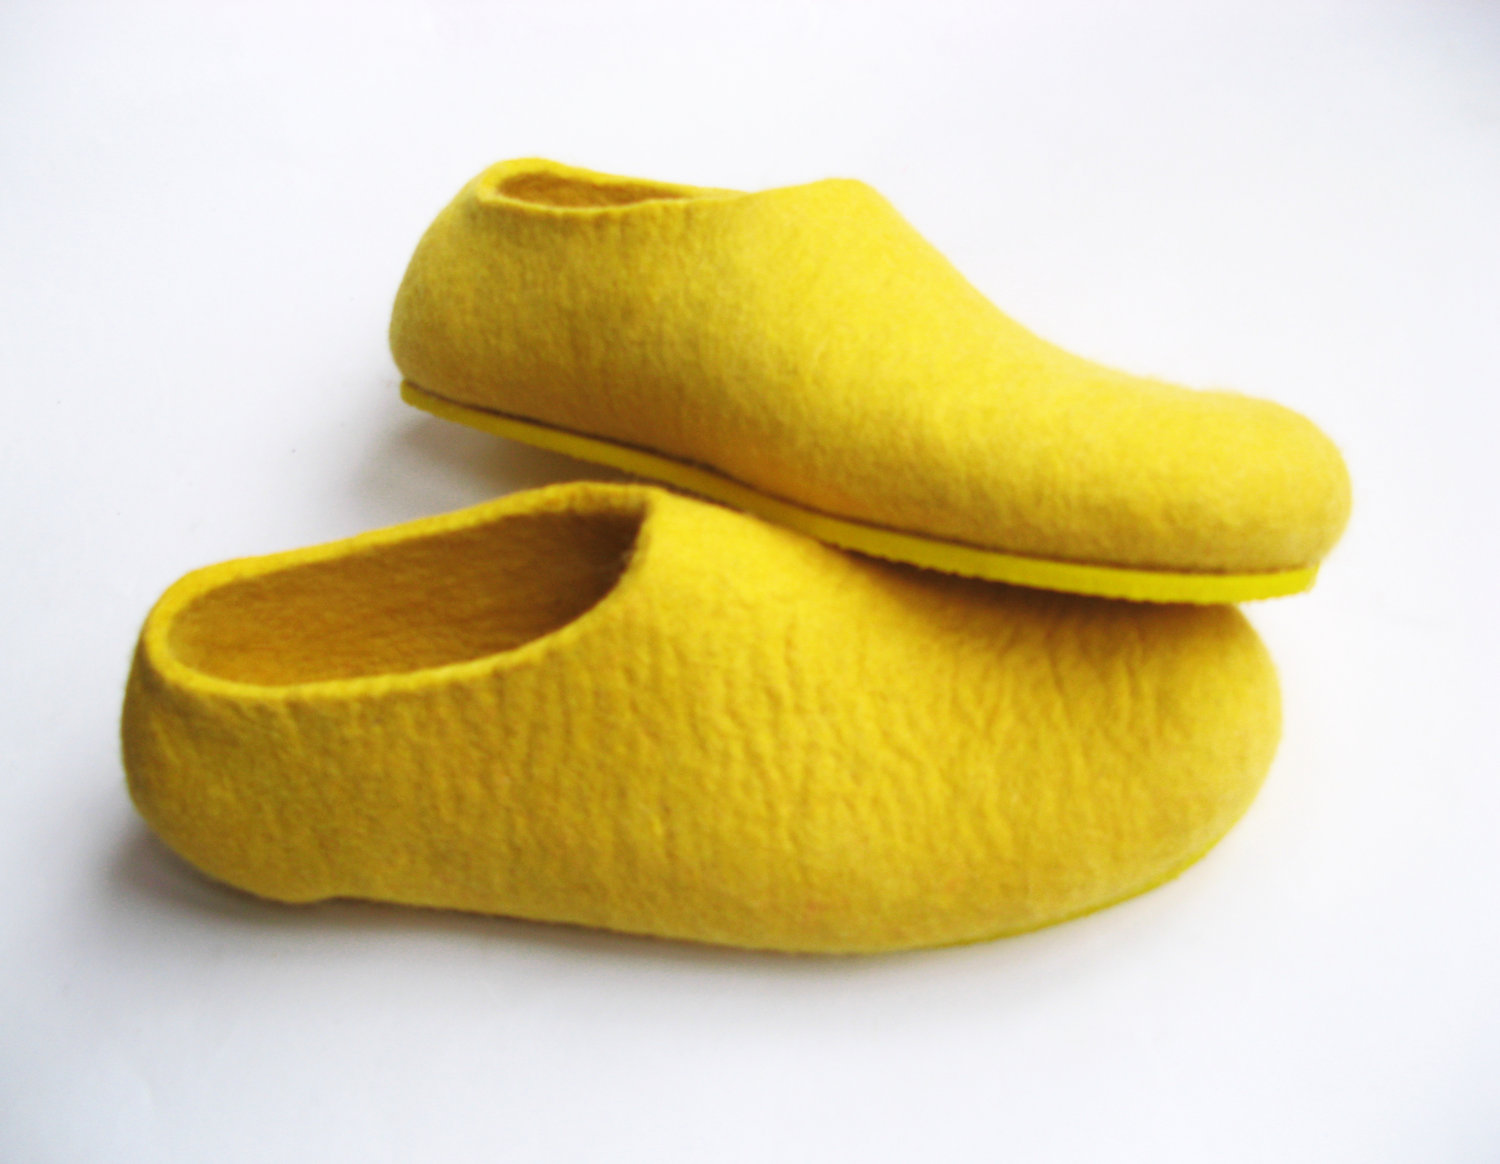 Felted Wool Slippers, Wool Boots, Cat Beds: Cold Feet? Why ...